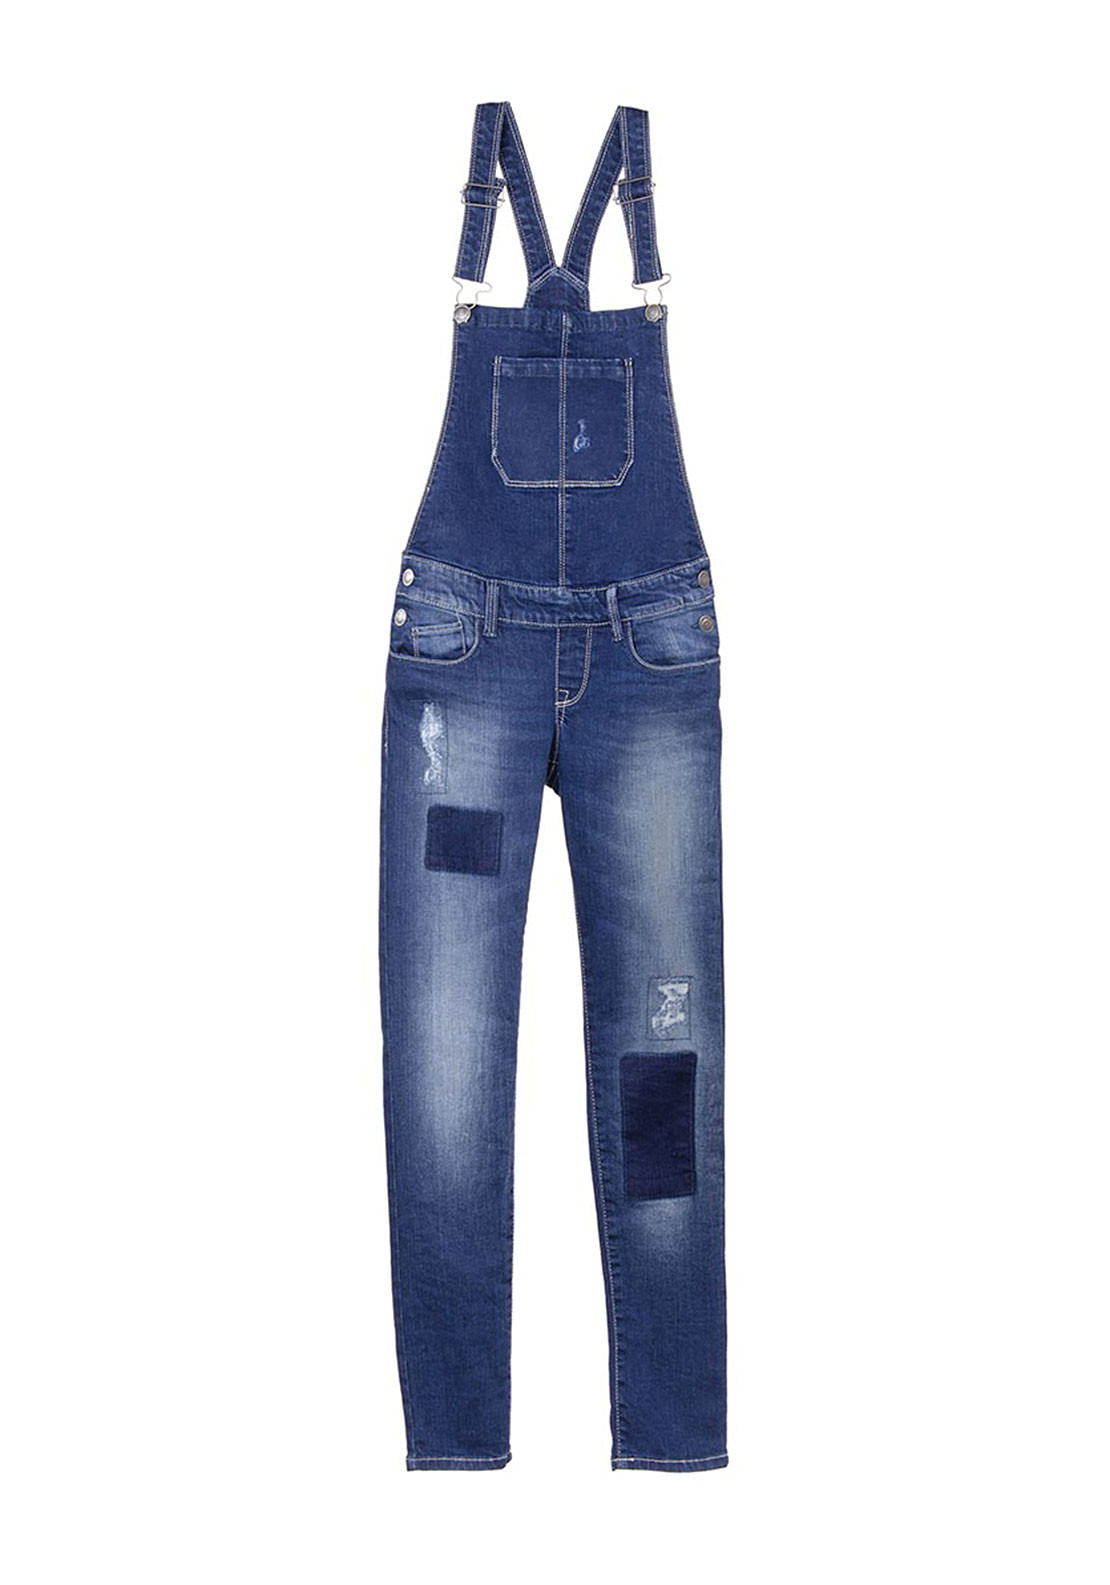 Tiffosi Girls Izzy Dungarees, Blue Denim